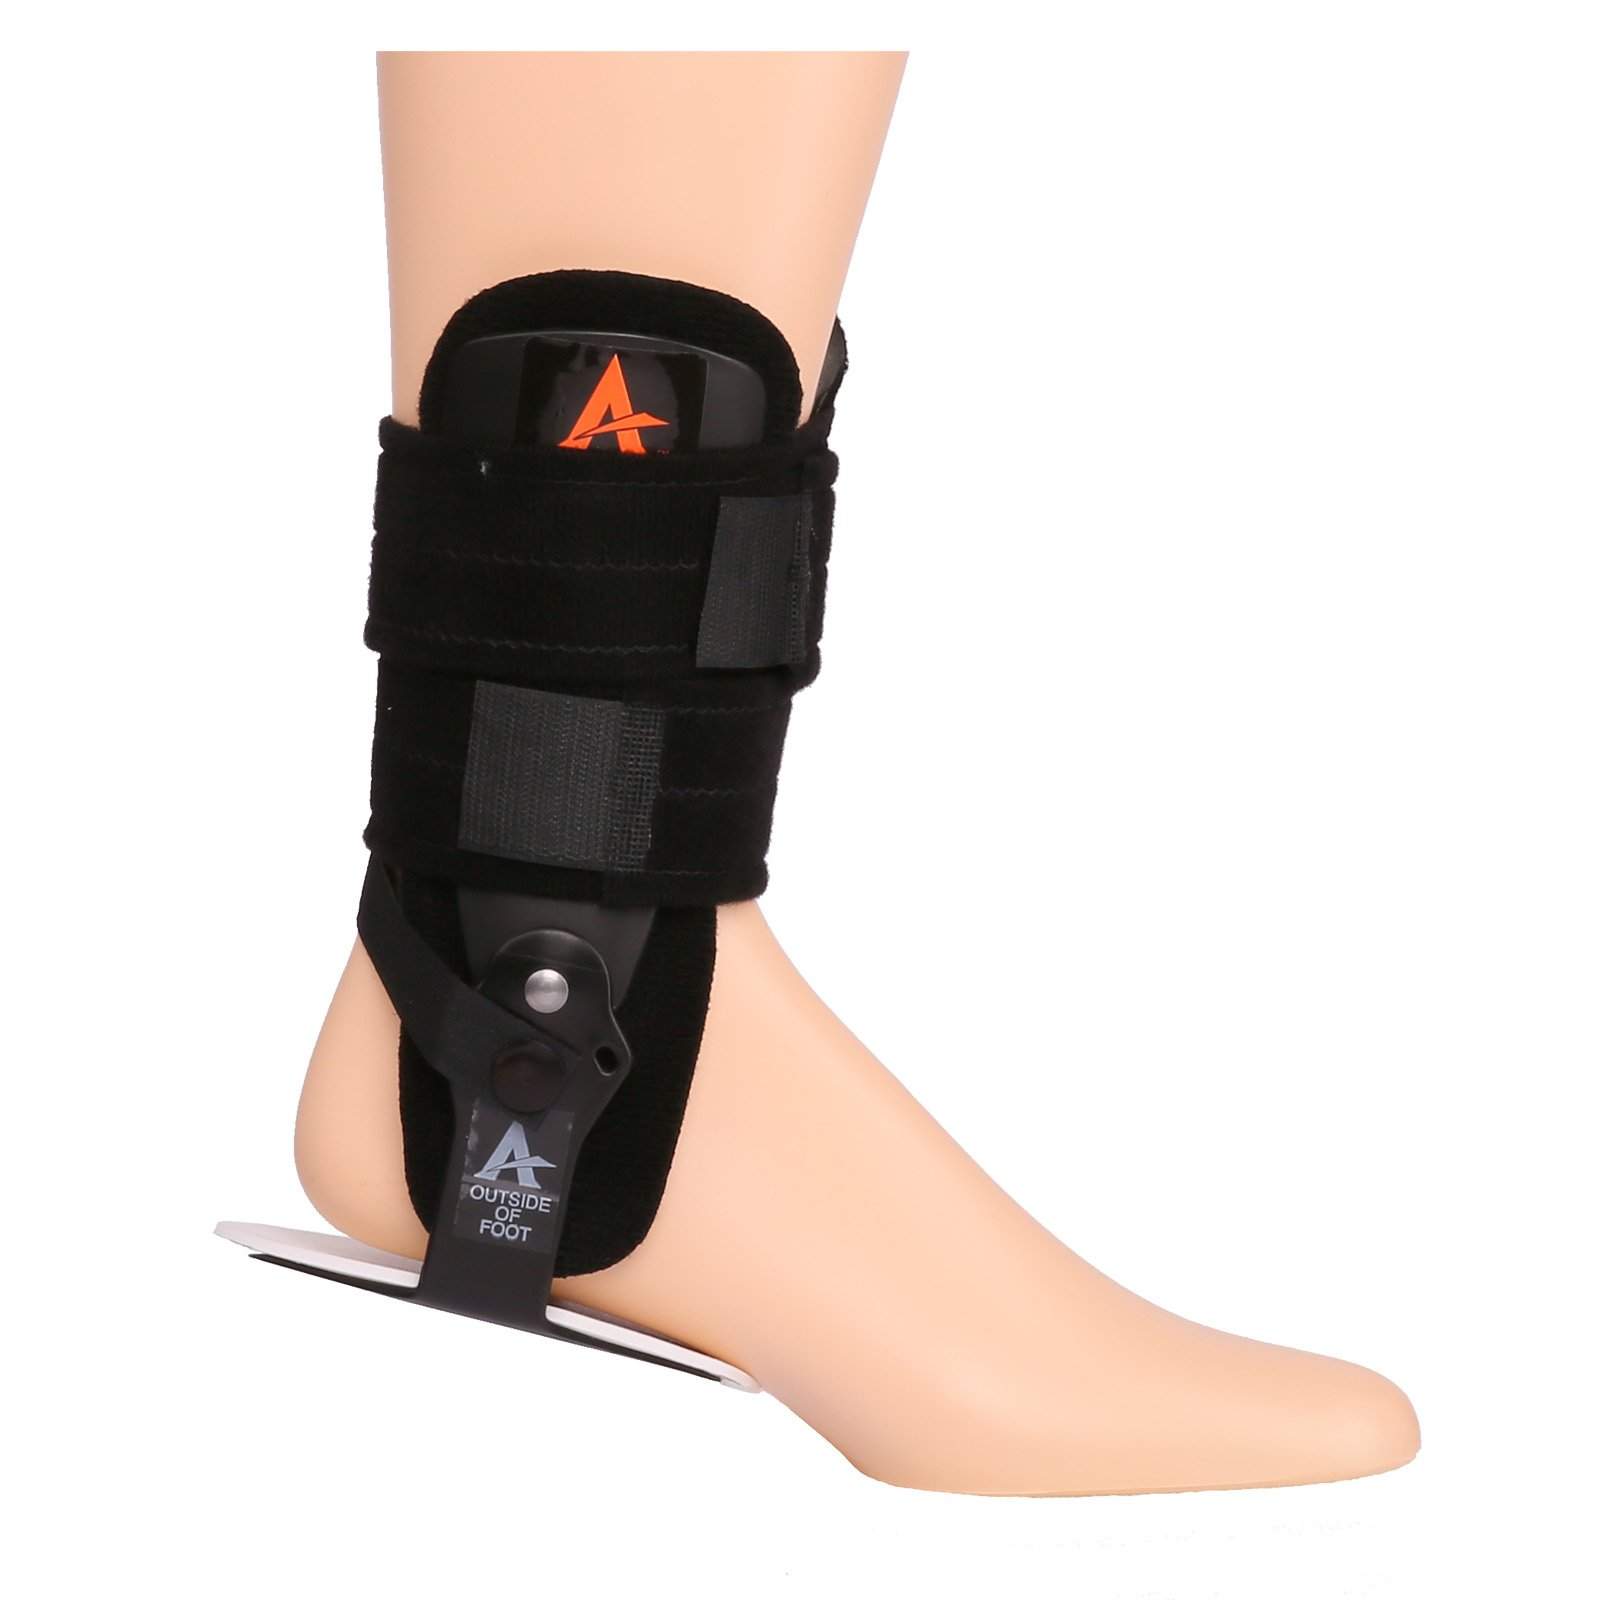 Active Ankle Multi-Phase Stabilizing Ankle Orthosis, Medical Stabilizer Brace, Support for Weak Ankles & Ankle Injuries, Edema Control, and Swelling, Adjustable Multi Phase Ankle Brace, Black, Small